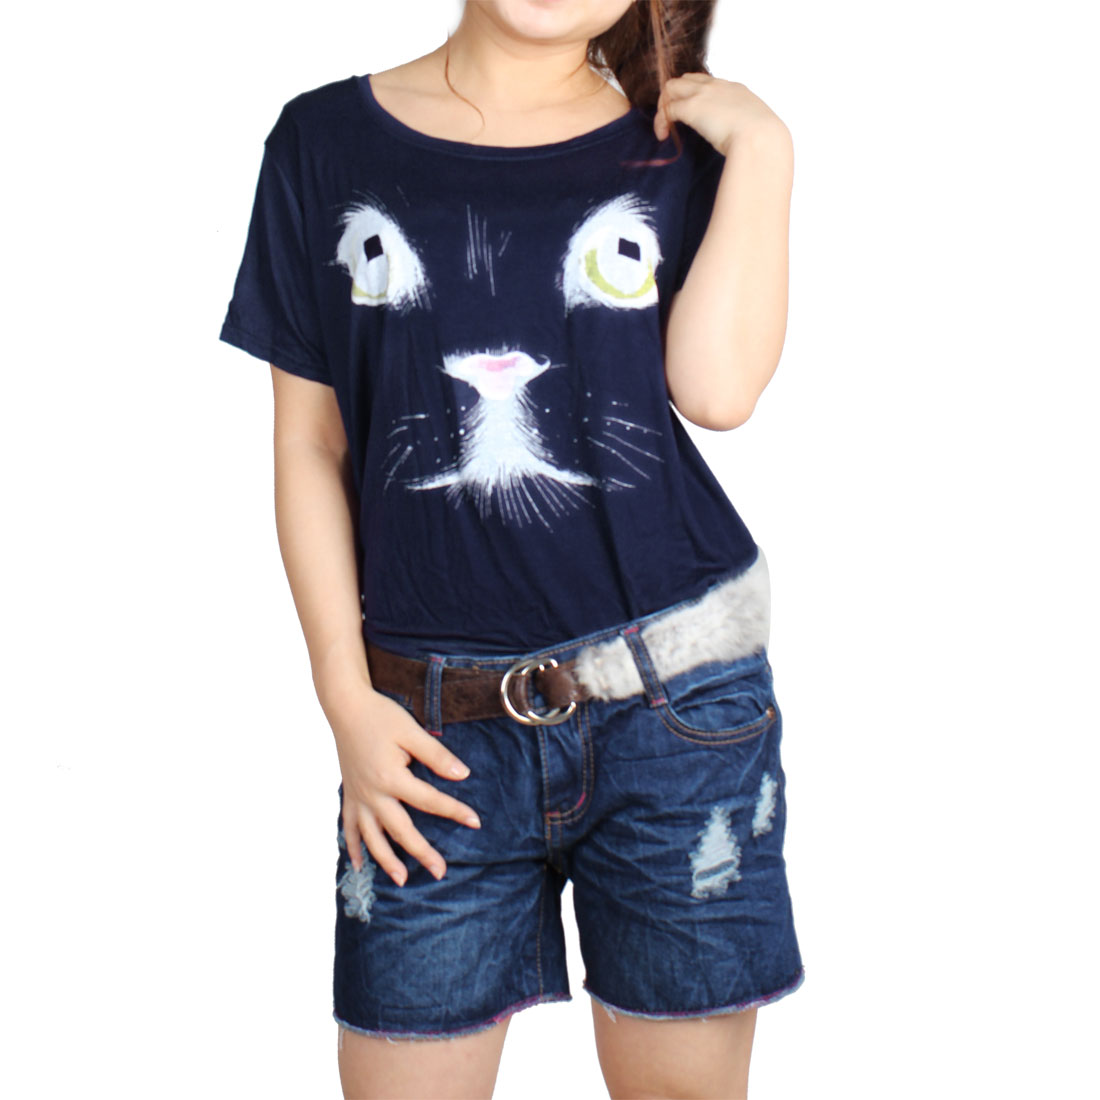 Short Sleeves Round Neck Cat Pattern Loose T-Shirt Blue M for Lady